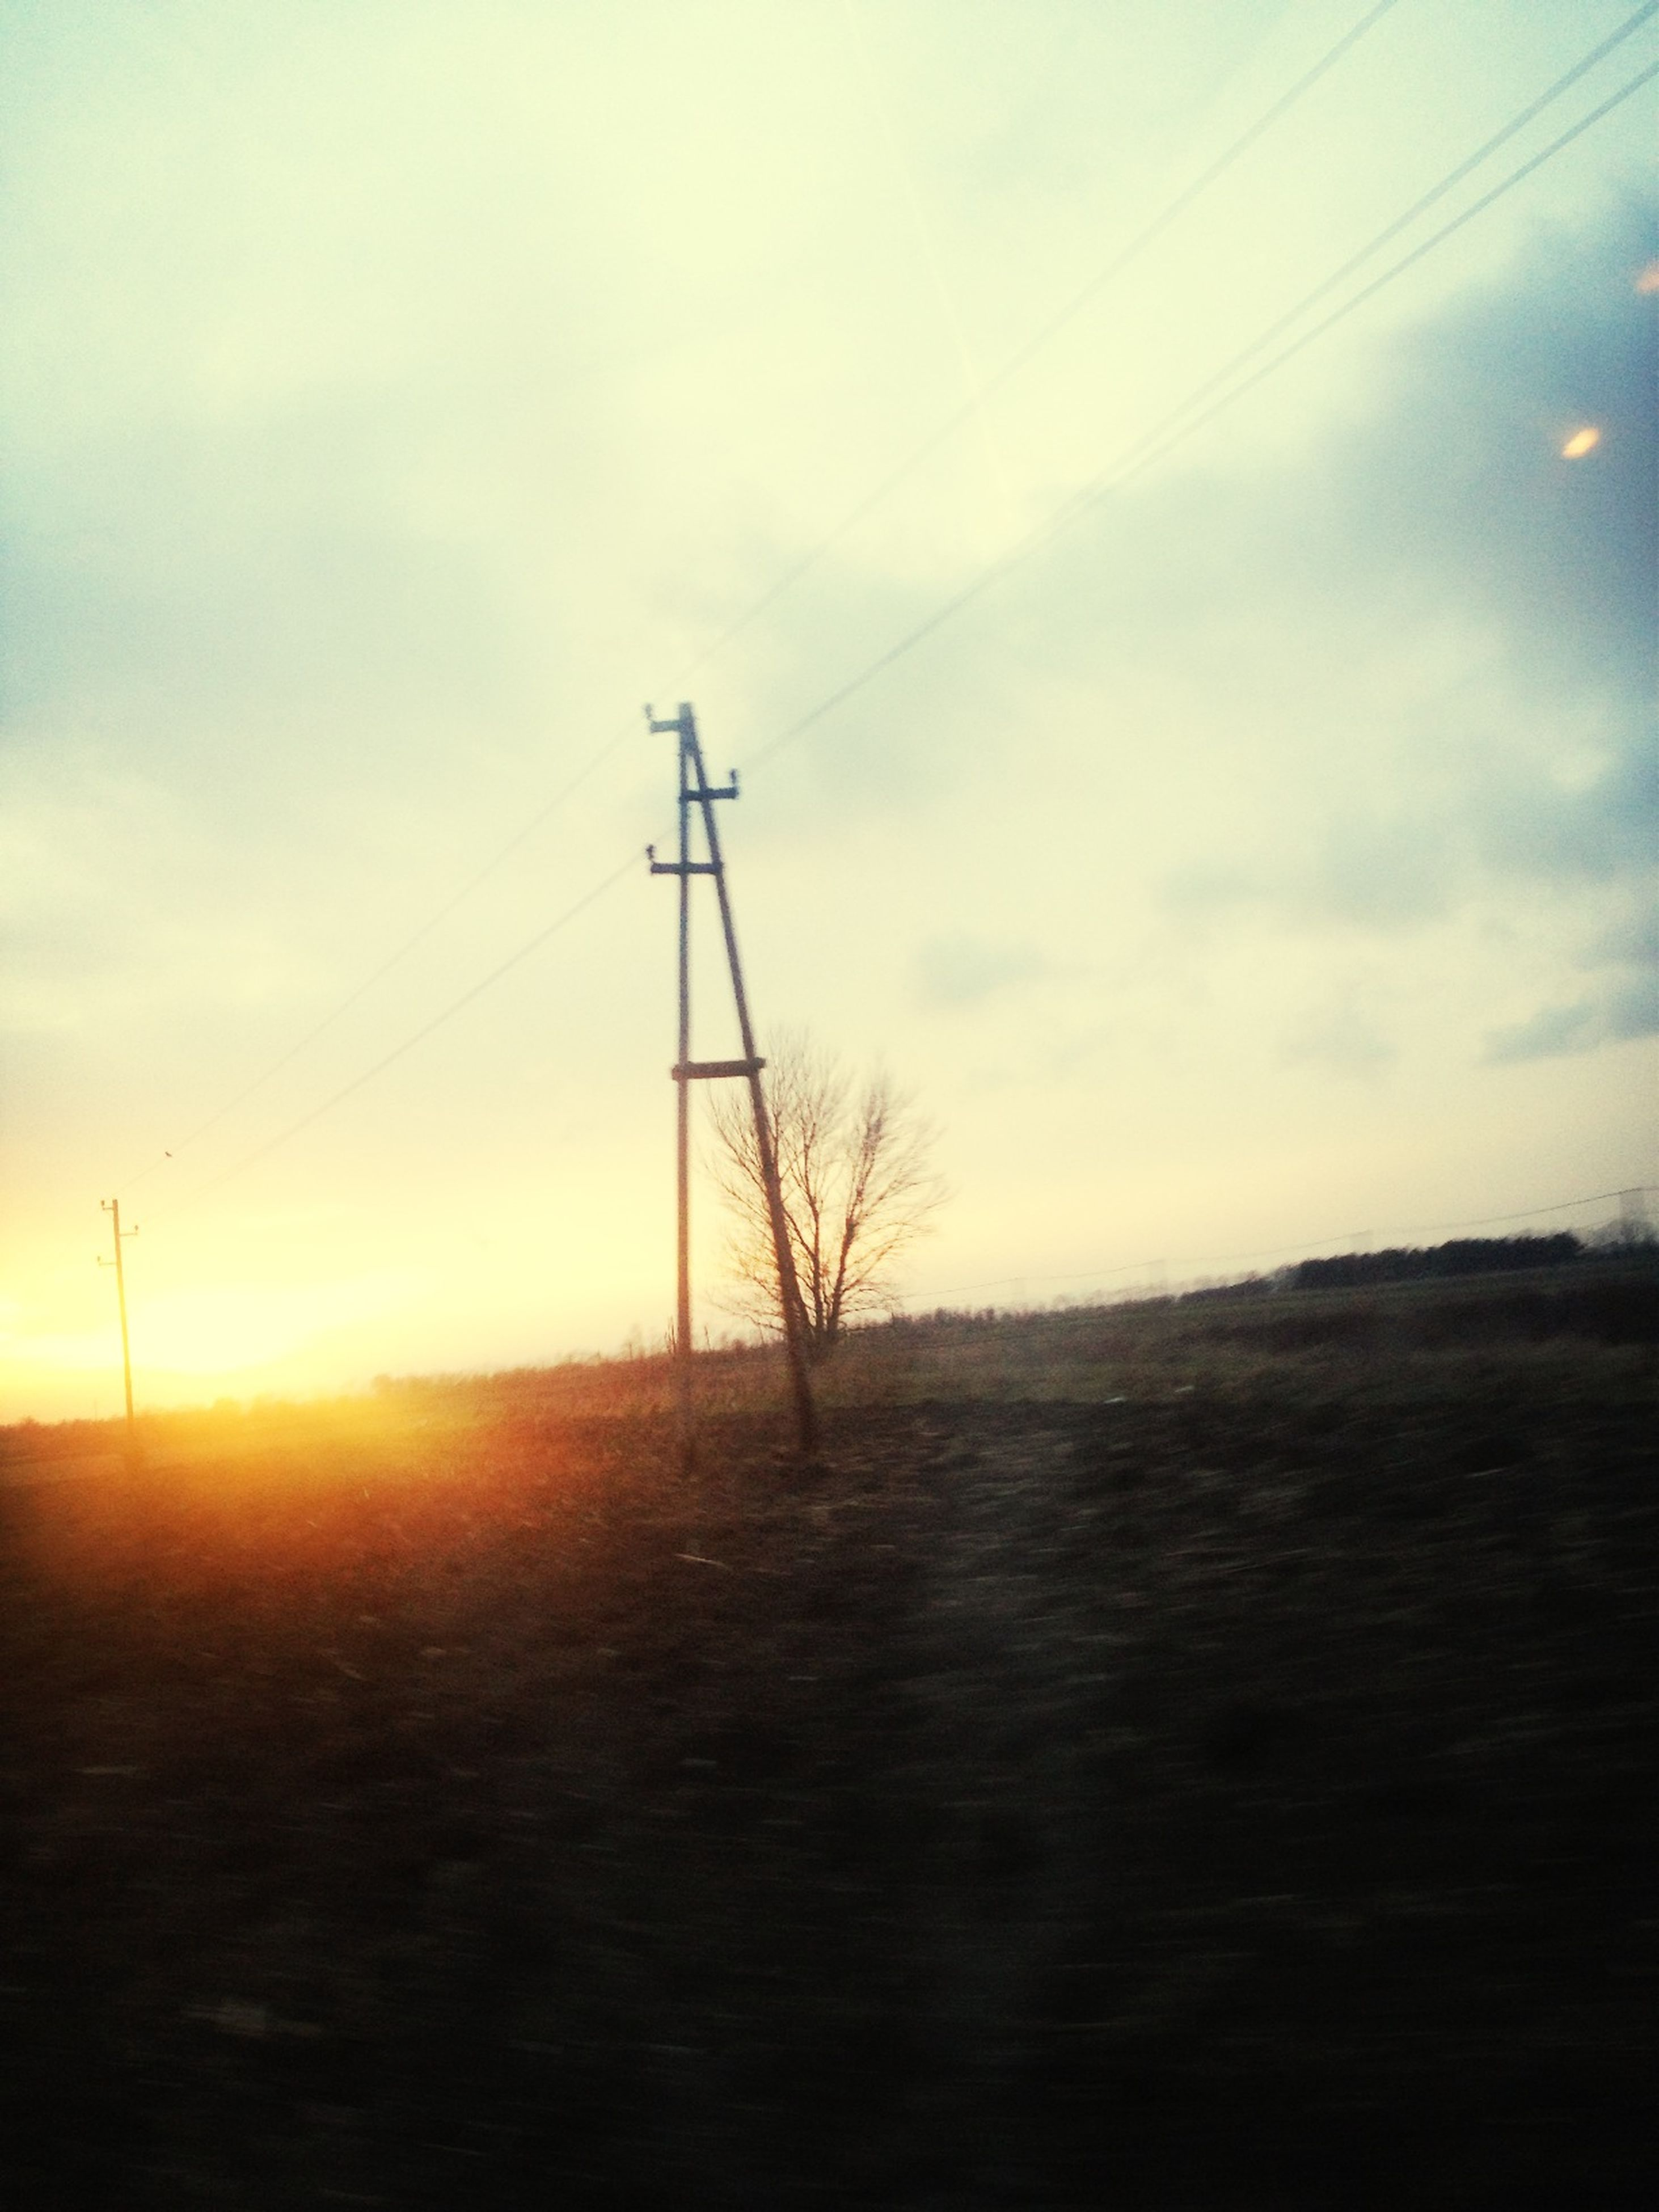 electricity pylon, power line, electricity, fuel and power generation, power supply, tranquility, sunset, tranquil scene, landscape, sky, technology, scenics, connection, field, cable, nature, beauty in nature, silhouette, sun, rural scene